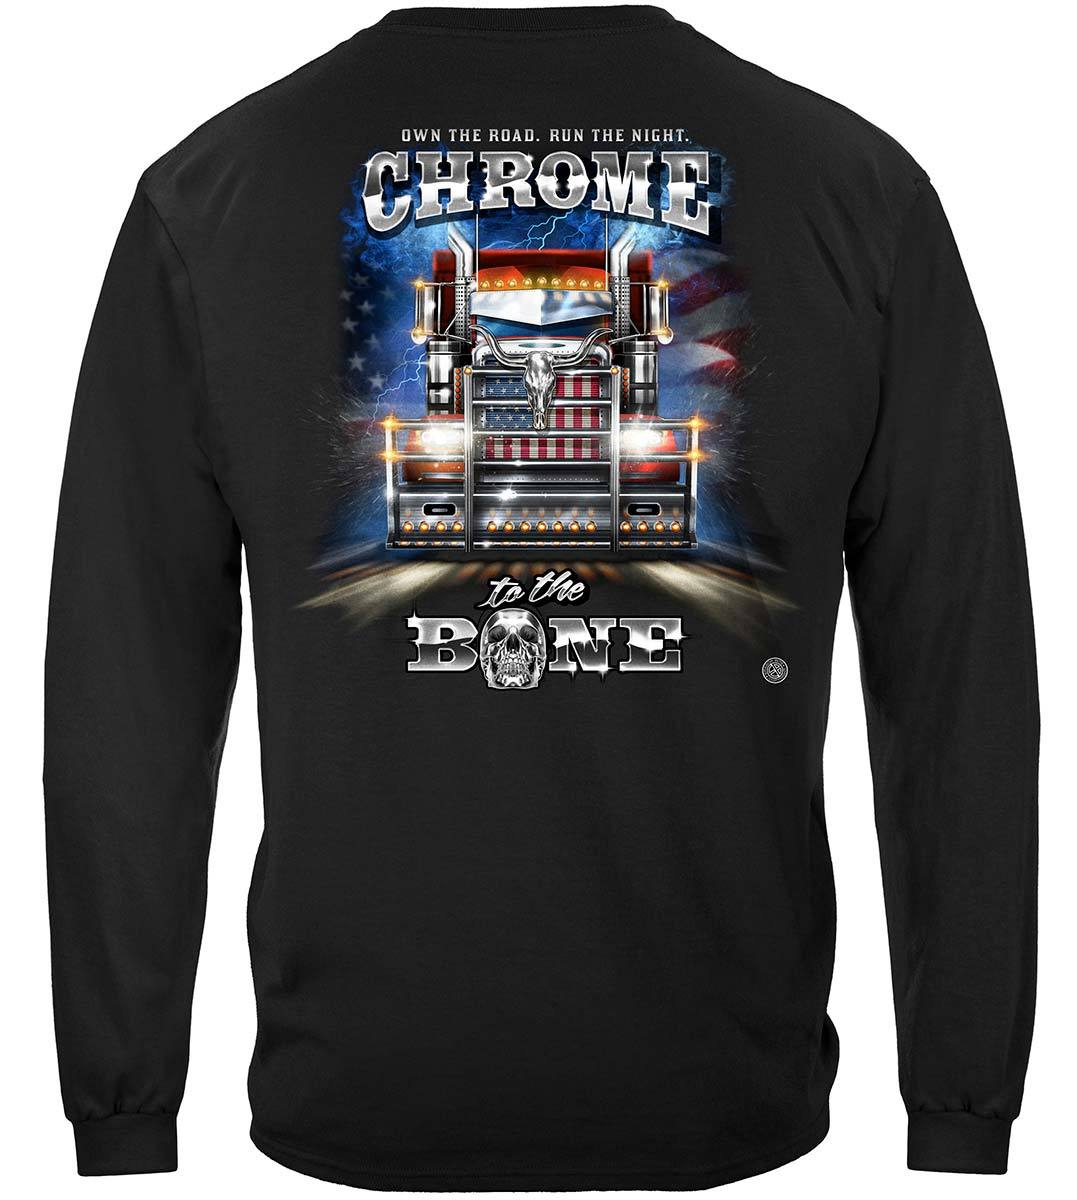 Trucker CTTB Big Rig Brush Guard Premium Long Sleeves